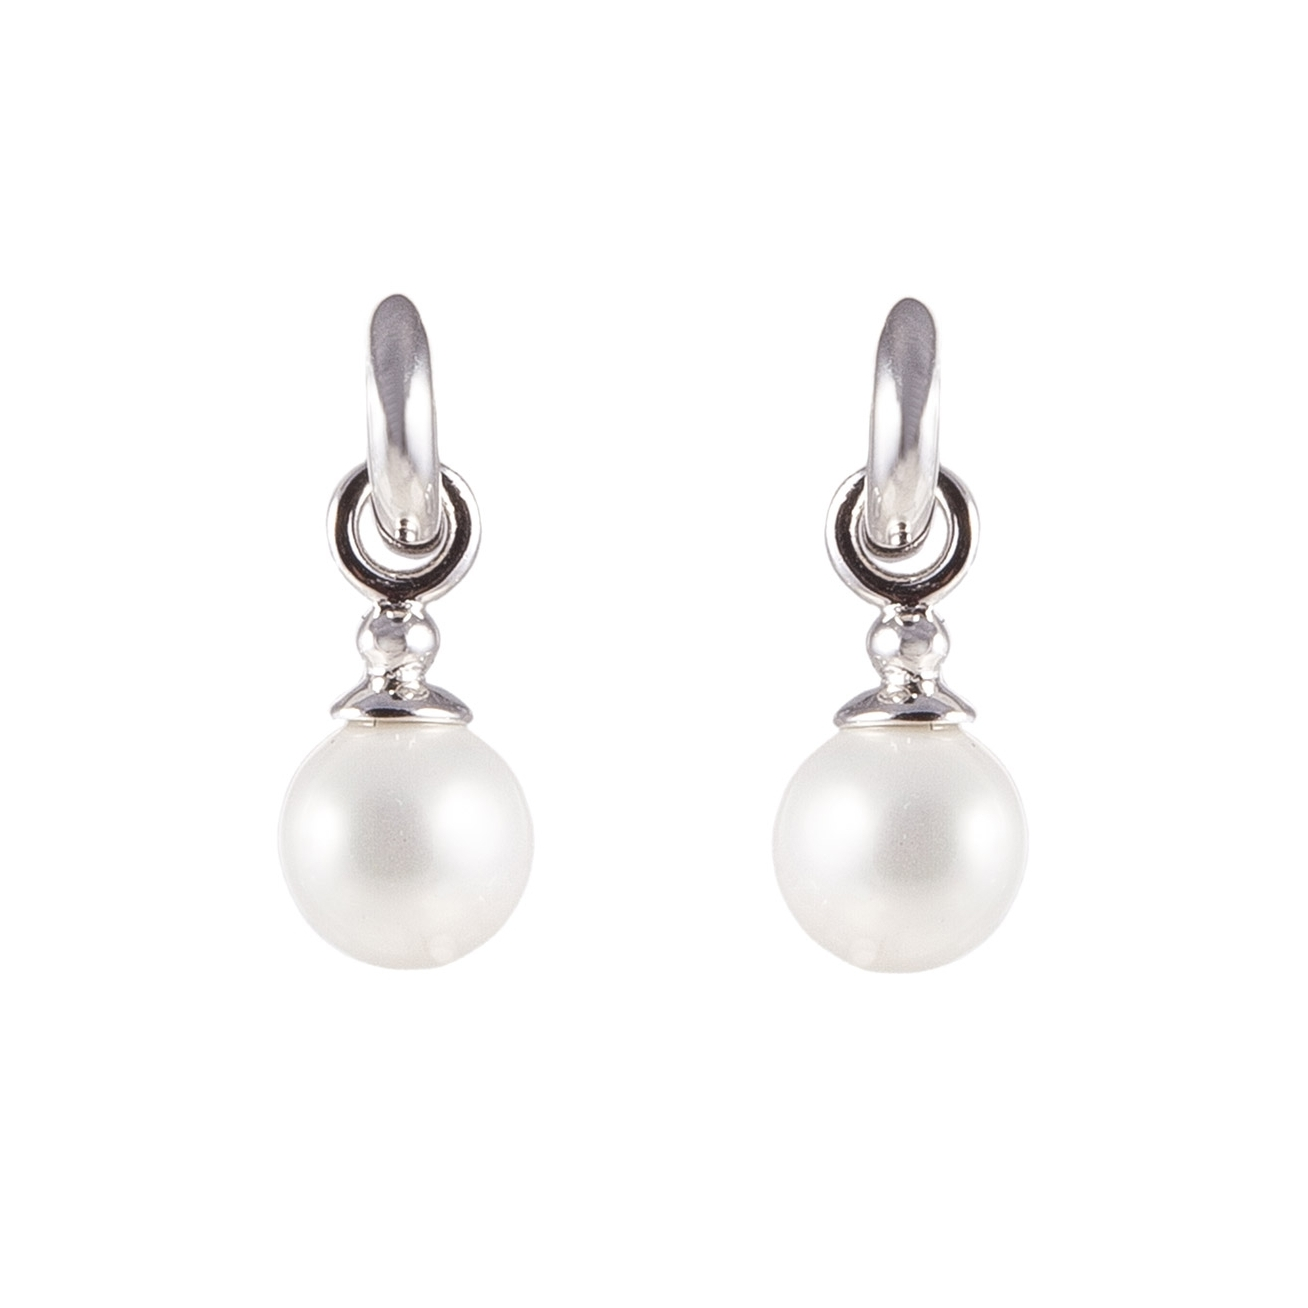 Polished Rings And Pearls Earrings